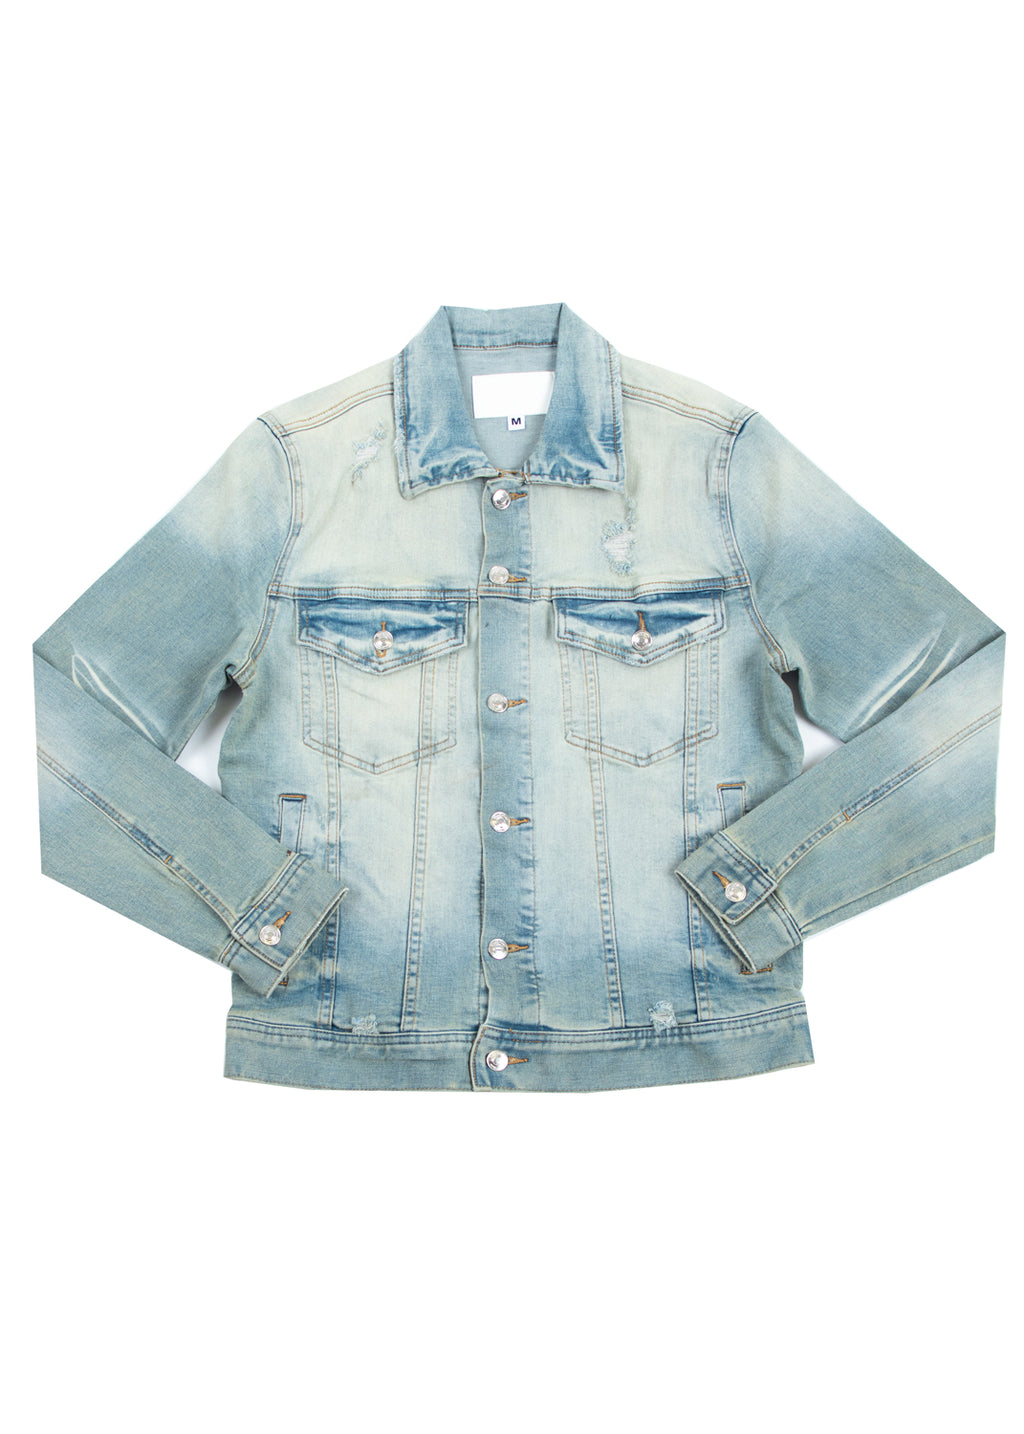 KURT 2.0 DENIM JACKET DIRTY LIGHT BLUE